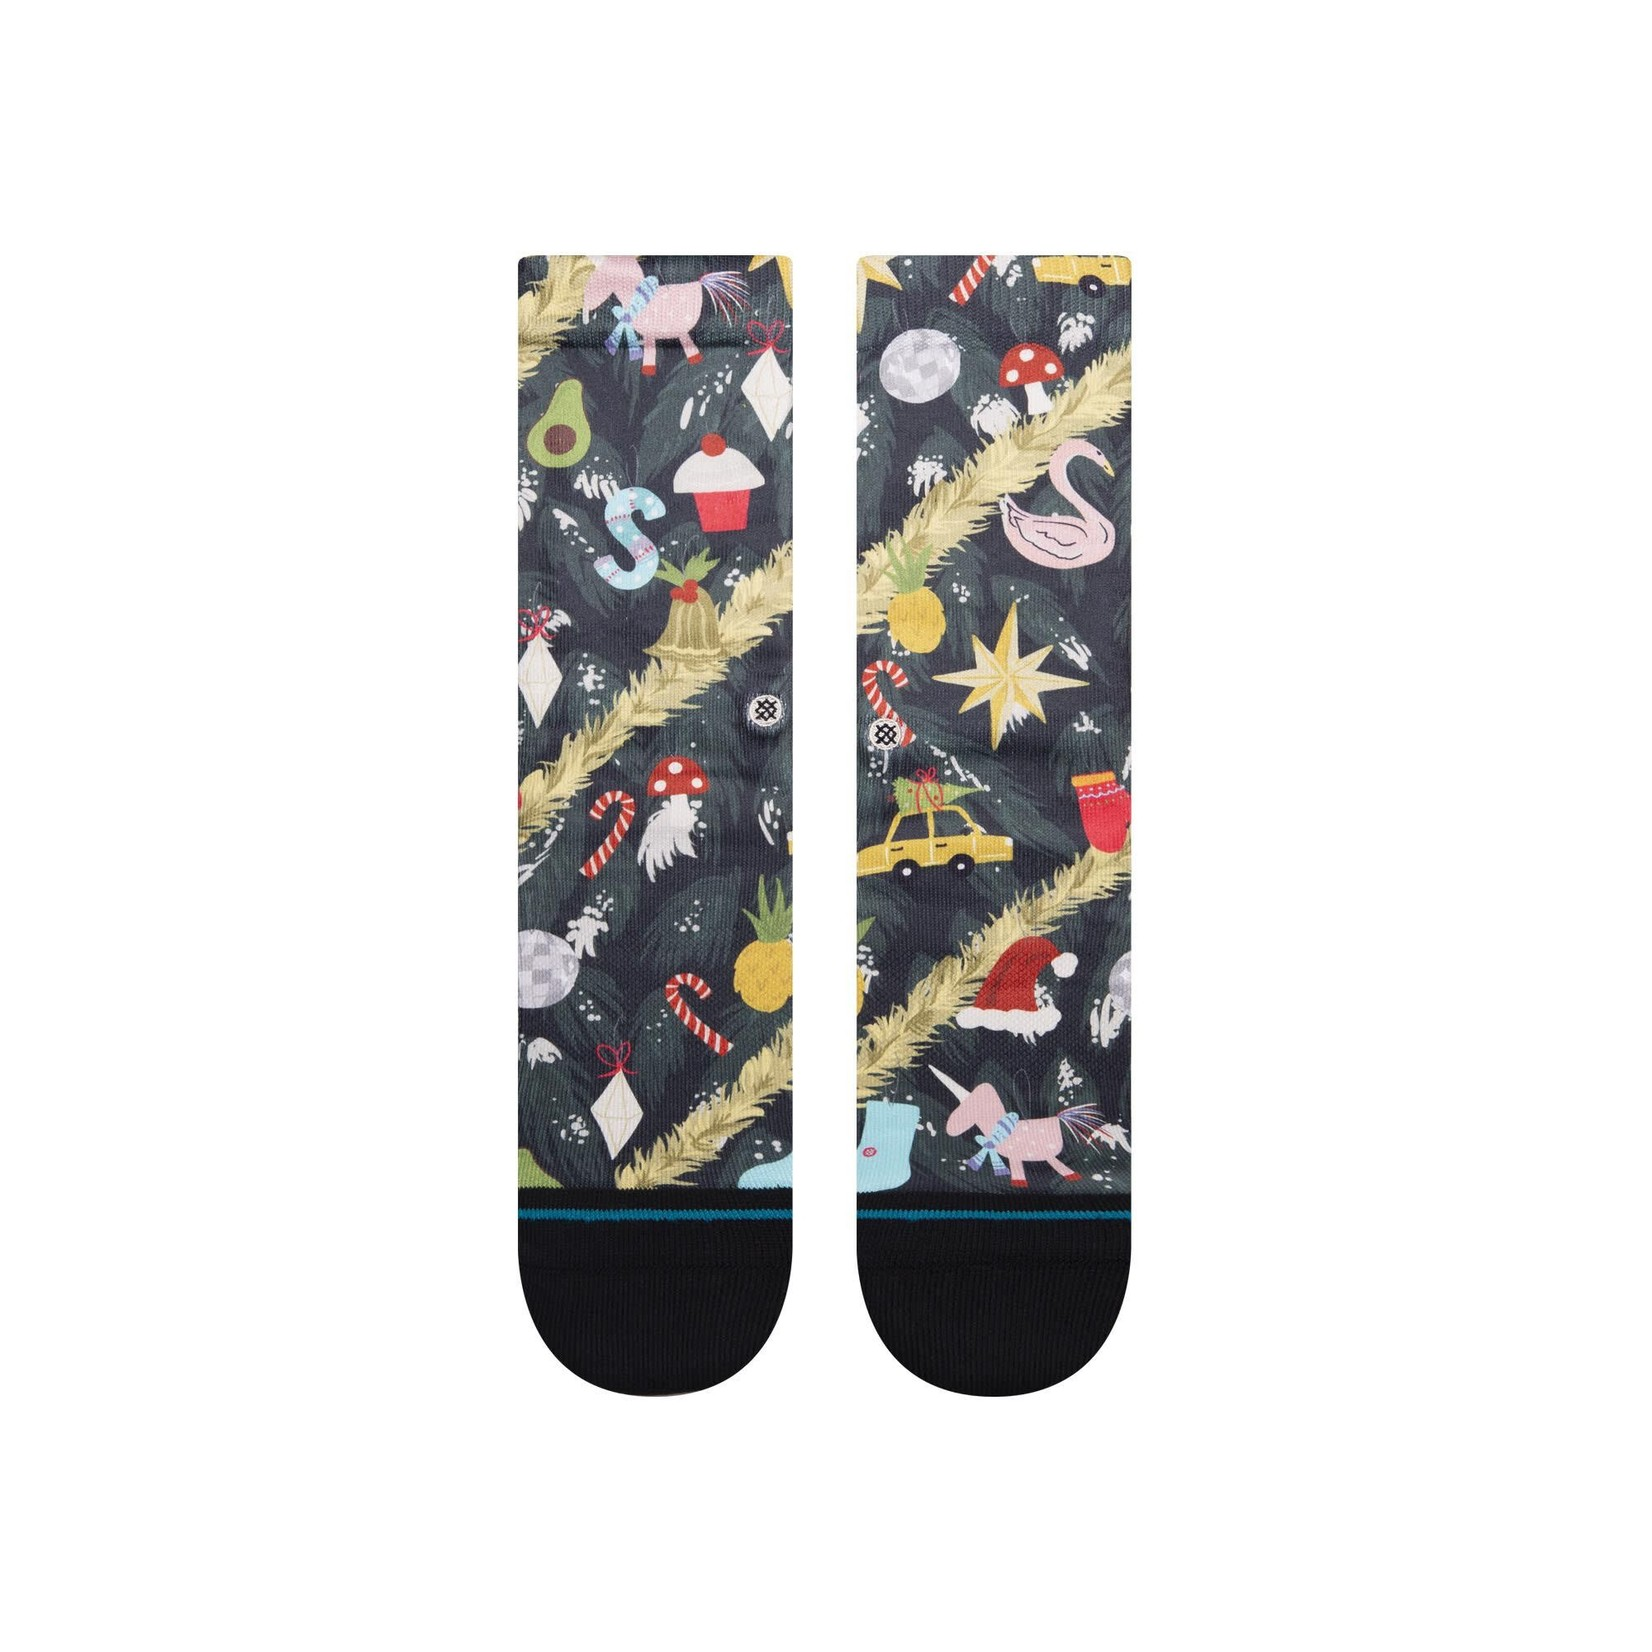 Stance Stance Socks Handle with Care